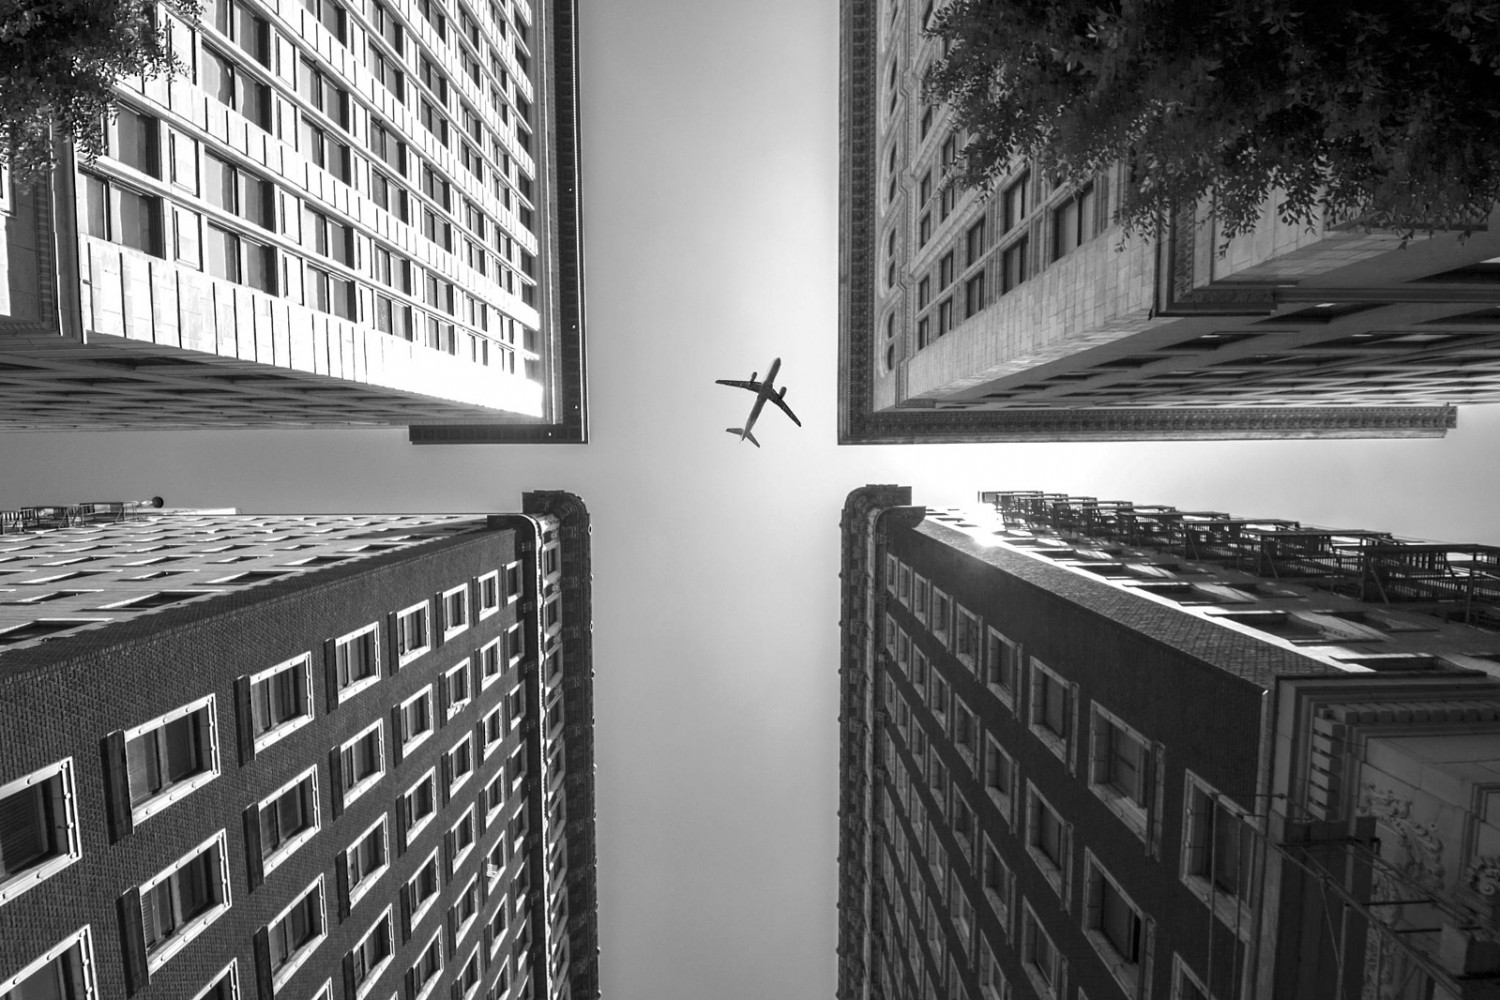 Merveilleux 500px Blog » The Passionate Photographer Community. » Airplanes And  Architecture: A Match Made In Photo Heaven